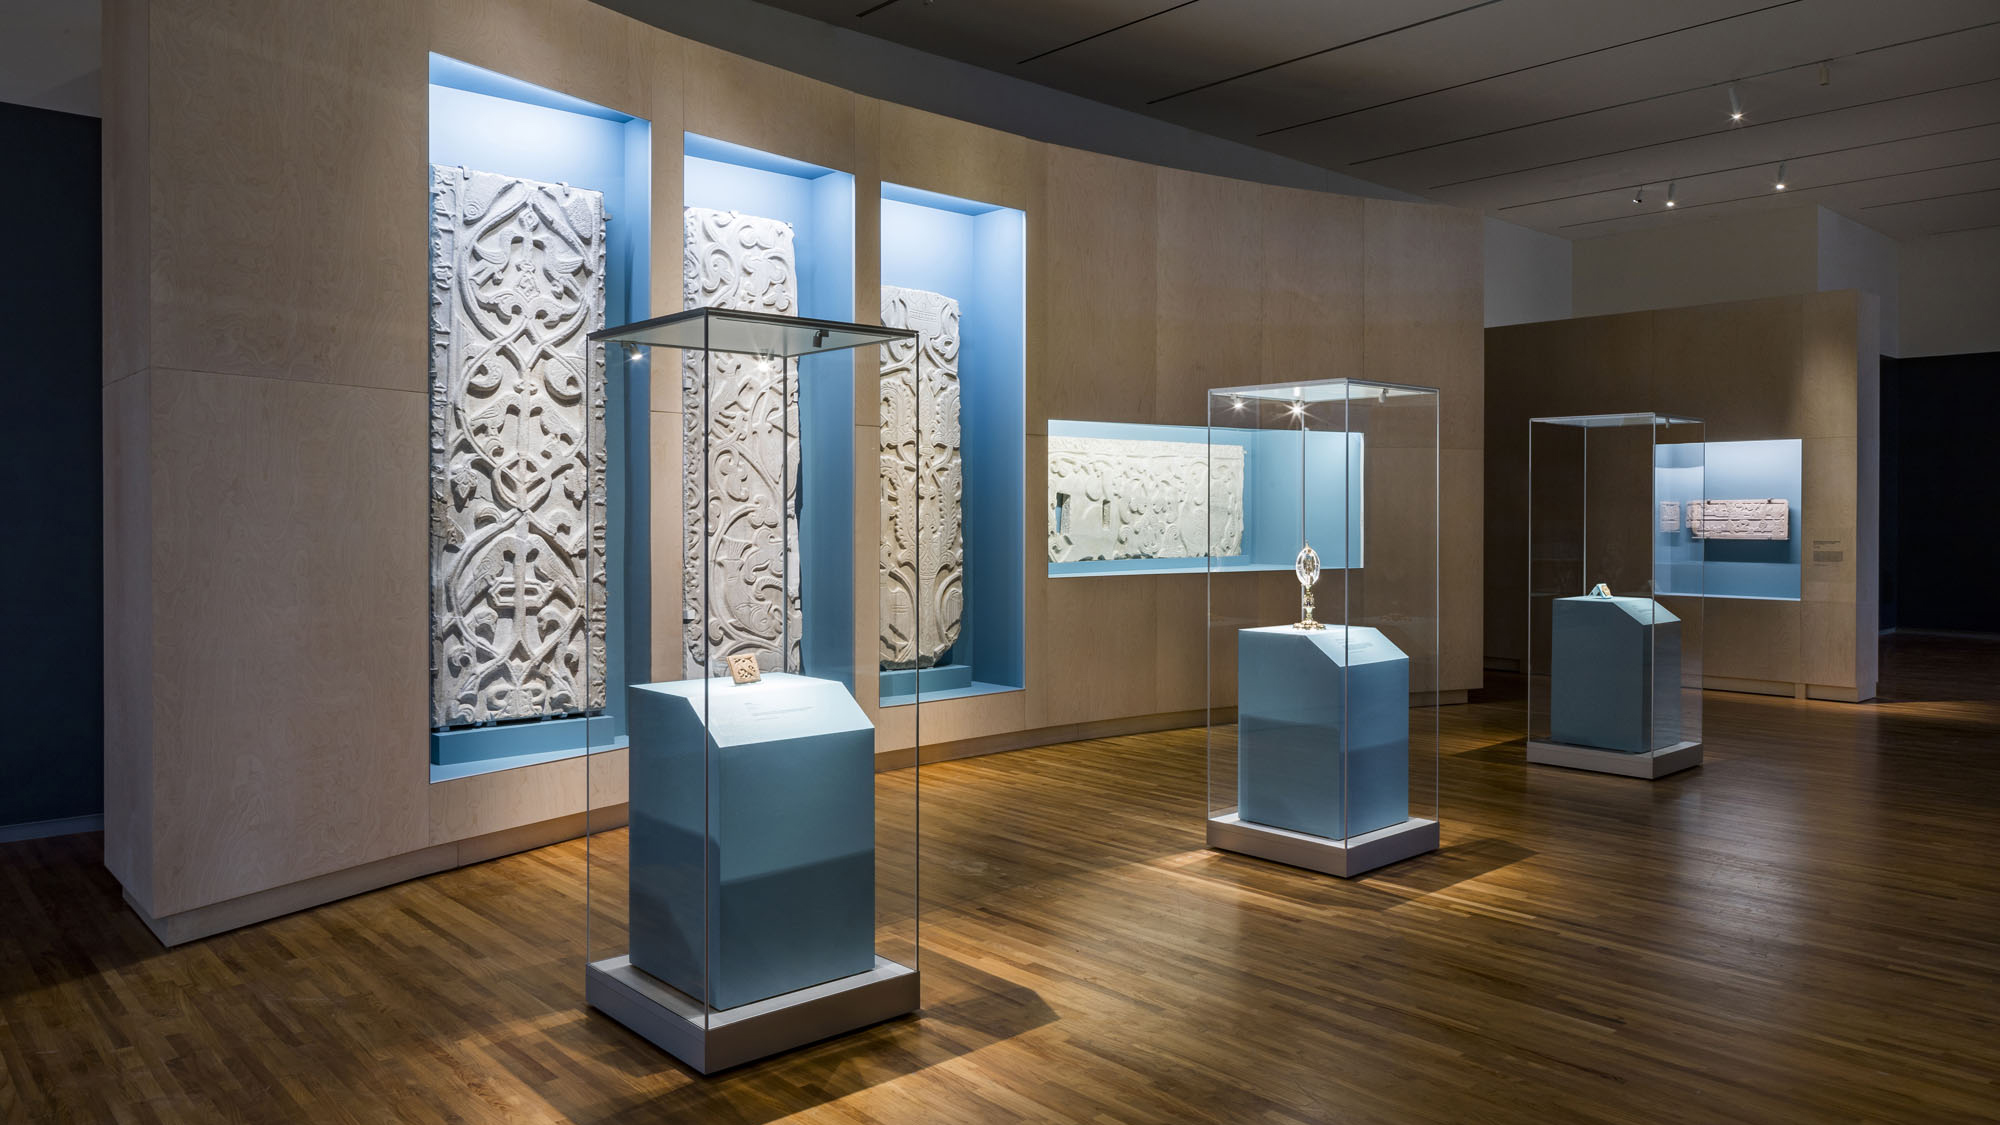 Three glass cases, each one containing a 1,000-year-old artifact from the Fatimid Caliphate, stand in front of a wall-mounted glass case containing segments of engraved stone walls.